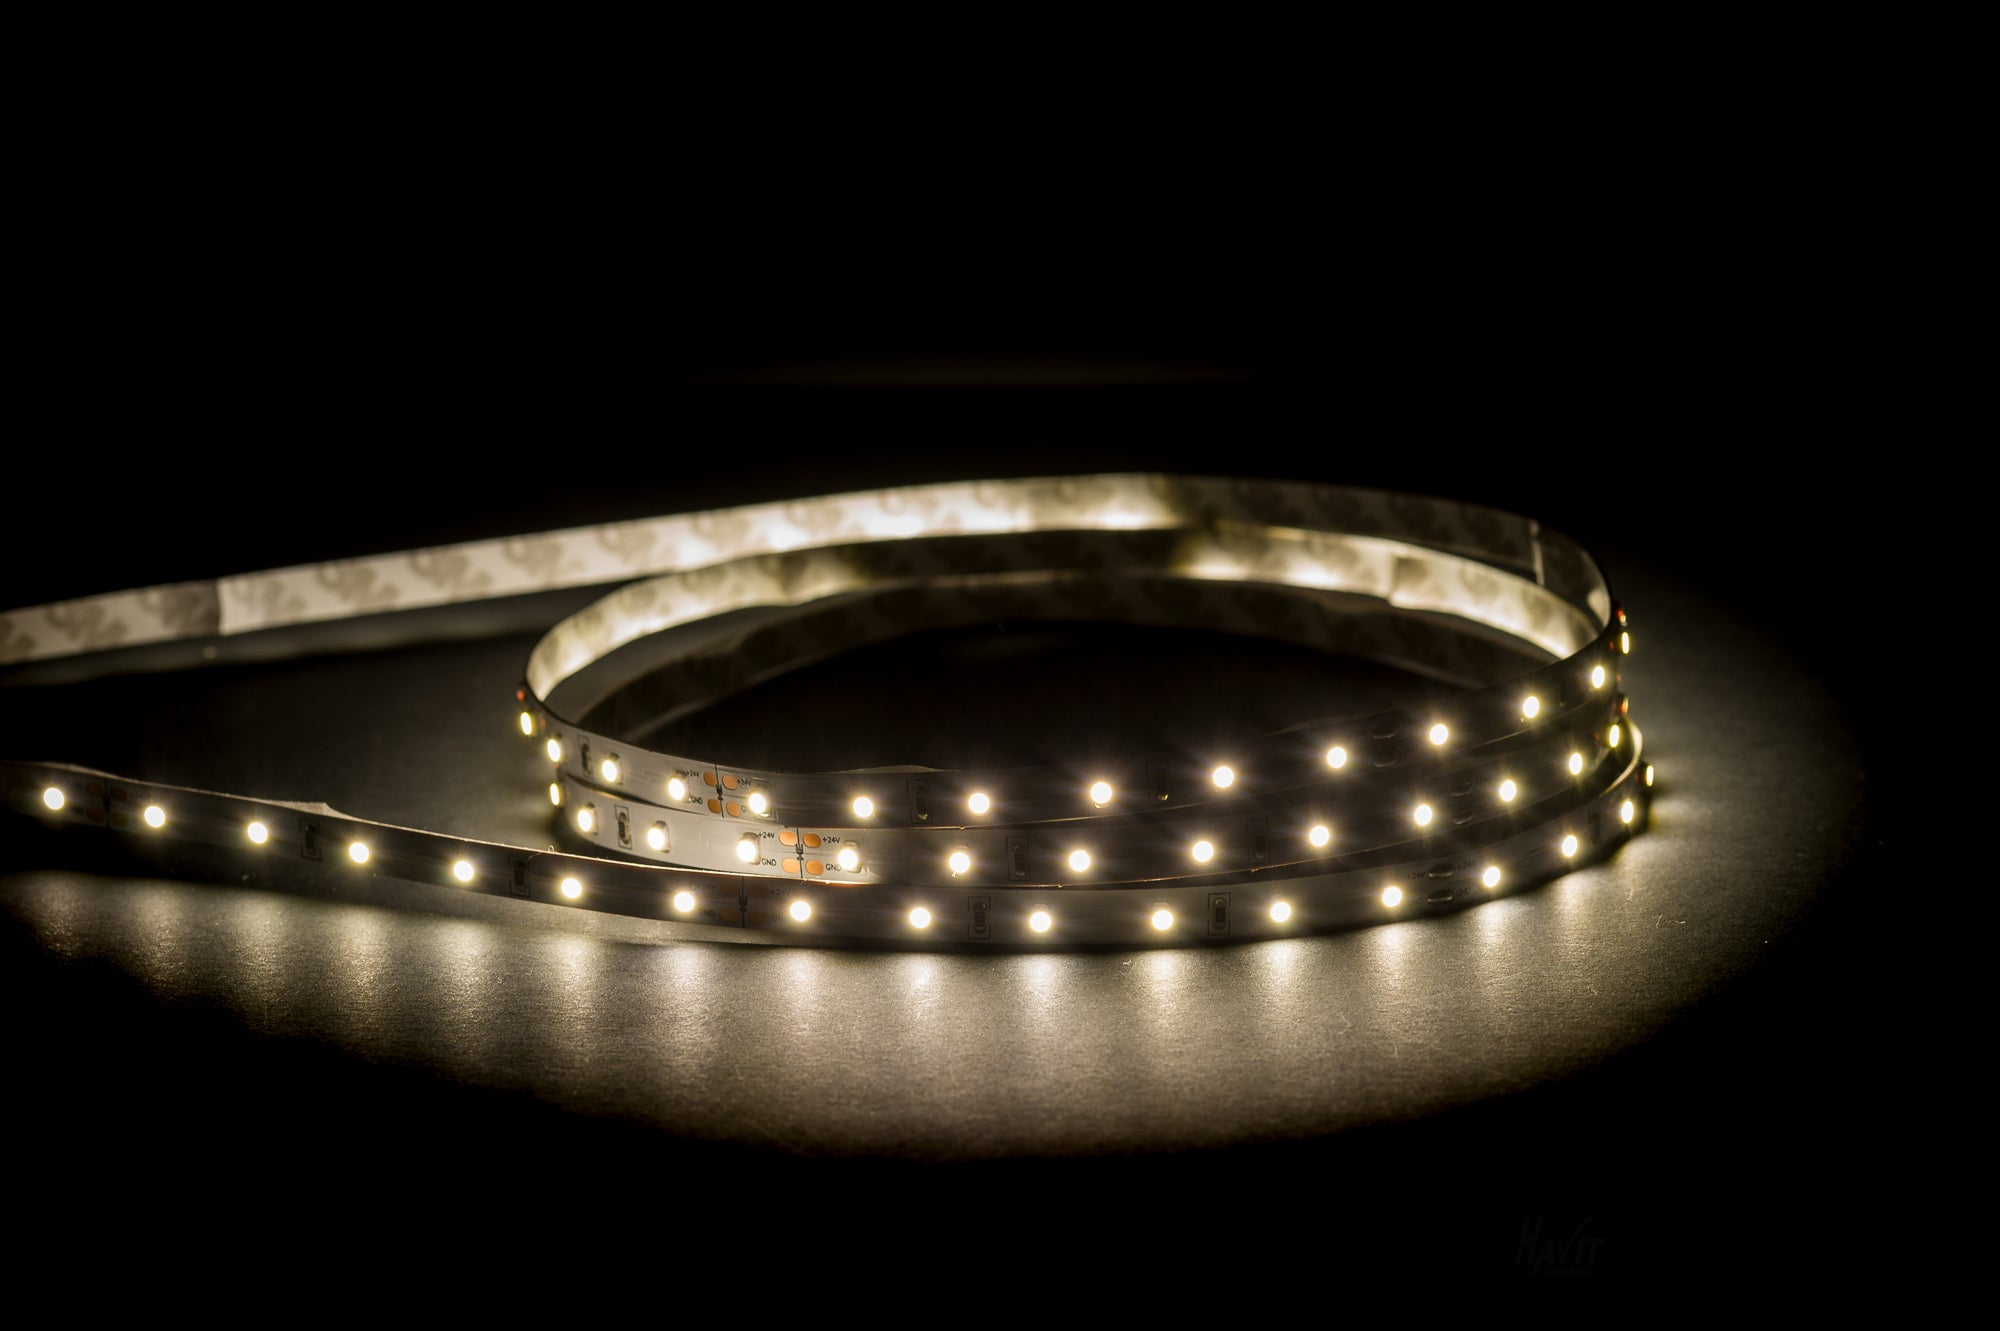 HV9722-IP20-64-5K - 4.8w 24v DC IP20 LED Strip 5500k